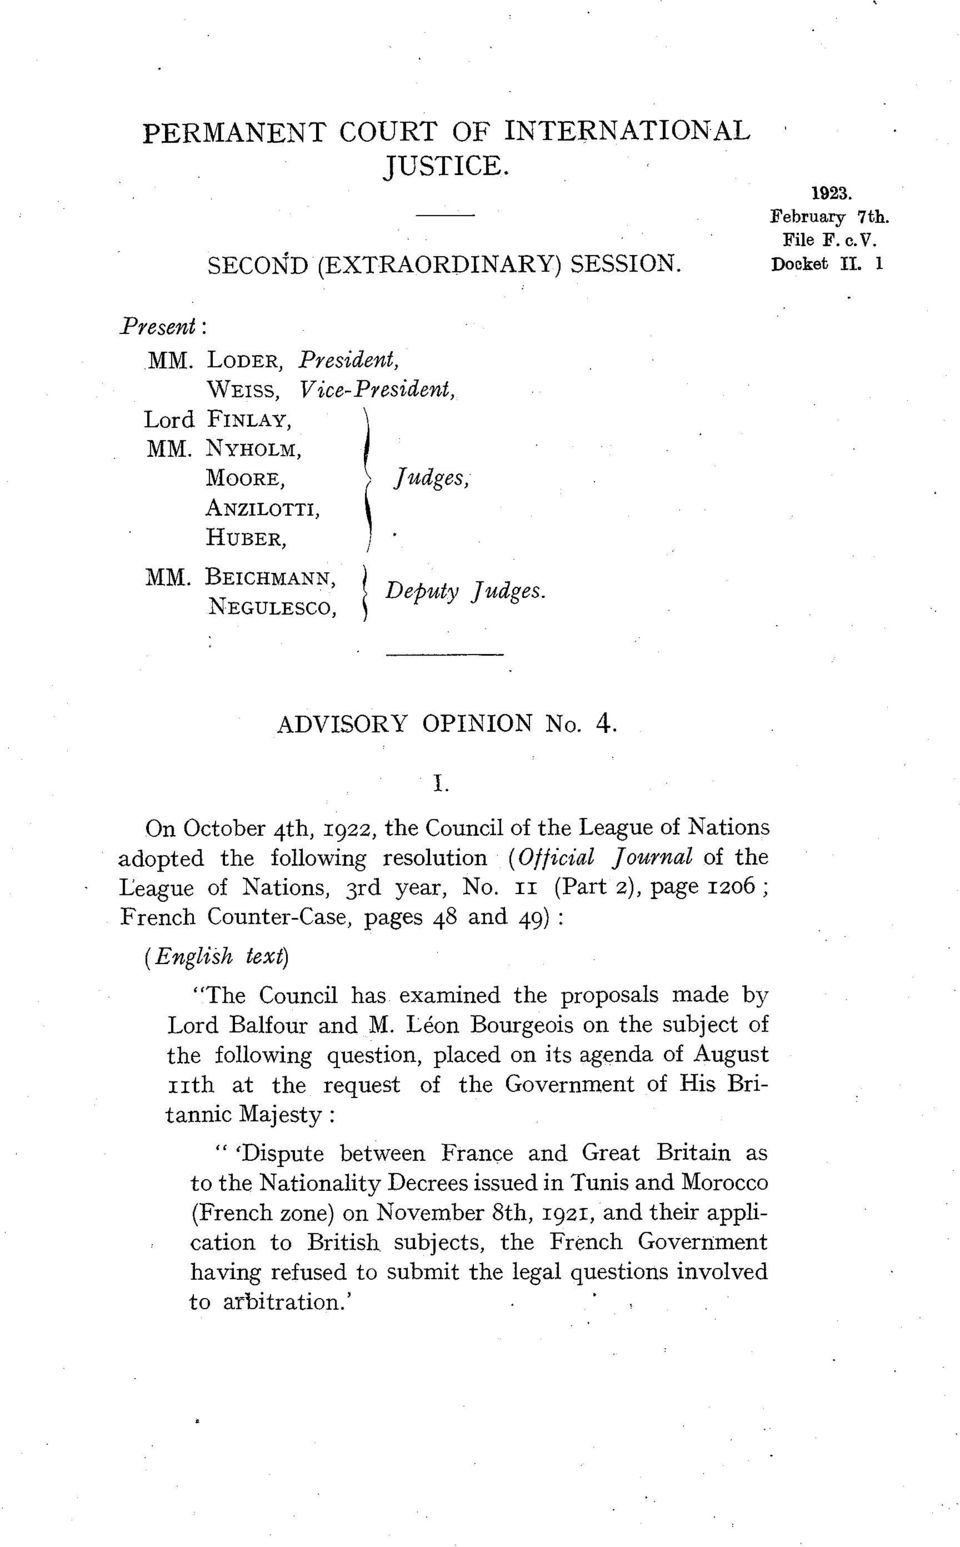 On October 4th, 1922, the Council of the League of Nations adopted the following resolution (Officia1 Journal of the Eeague of Nations, 3rd year, No.